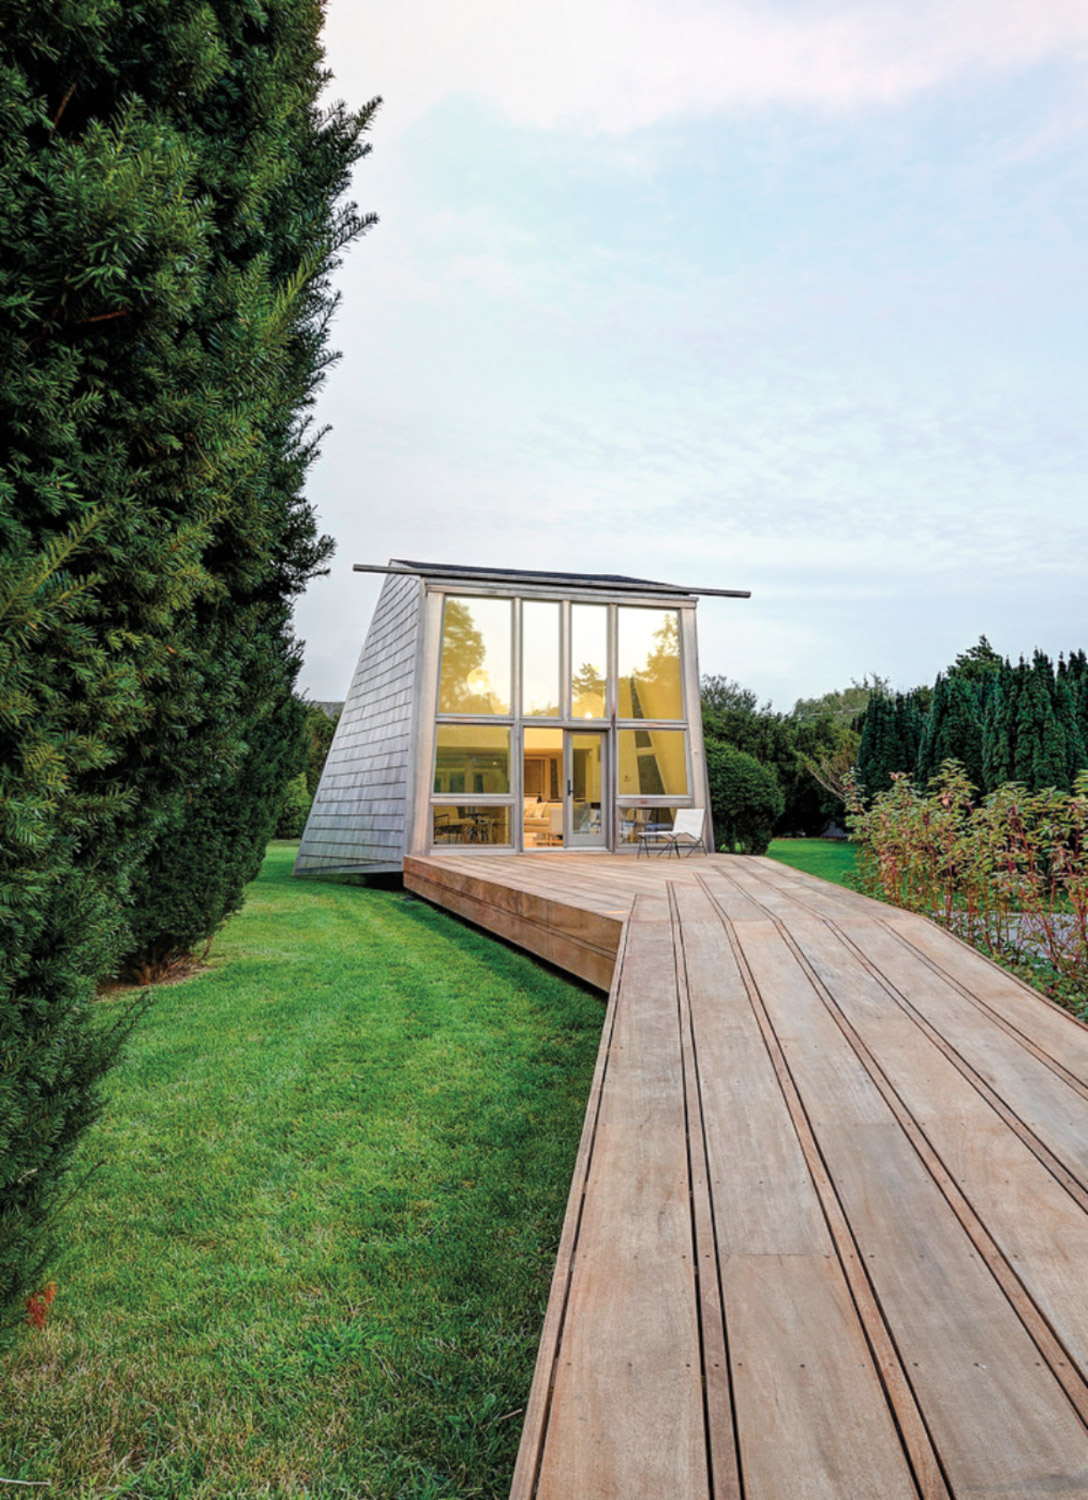 wooden walkway to glass structure